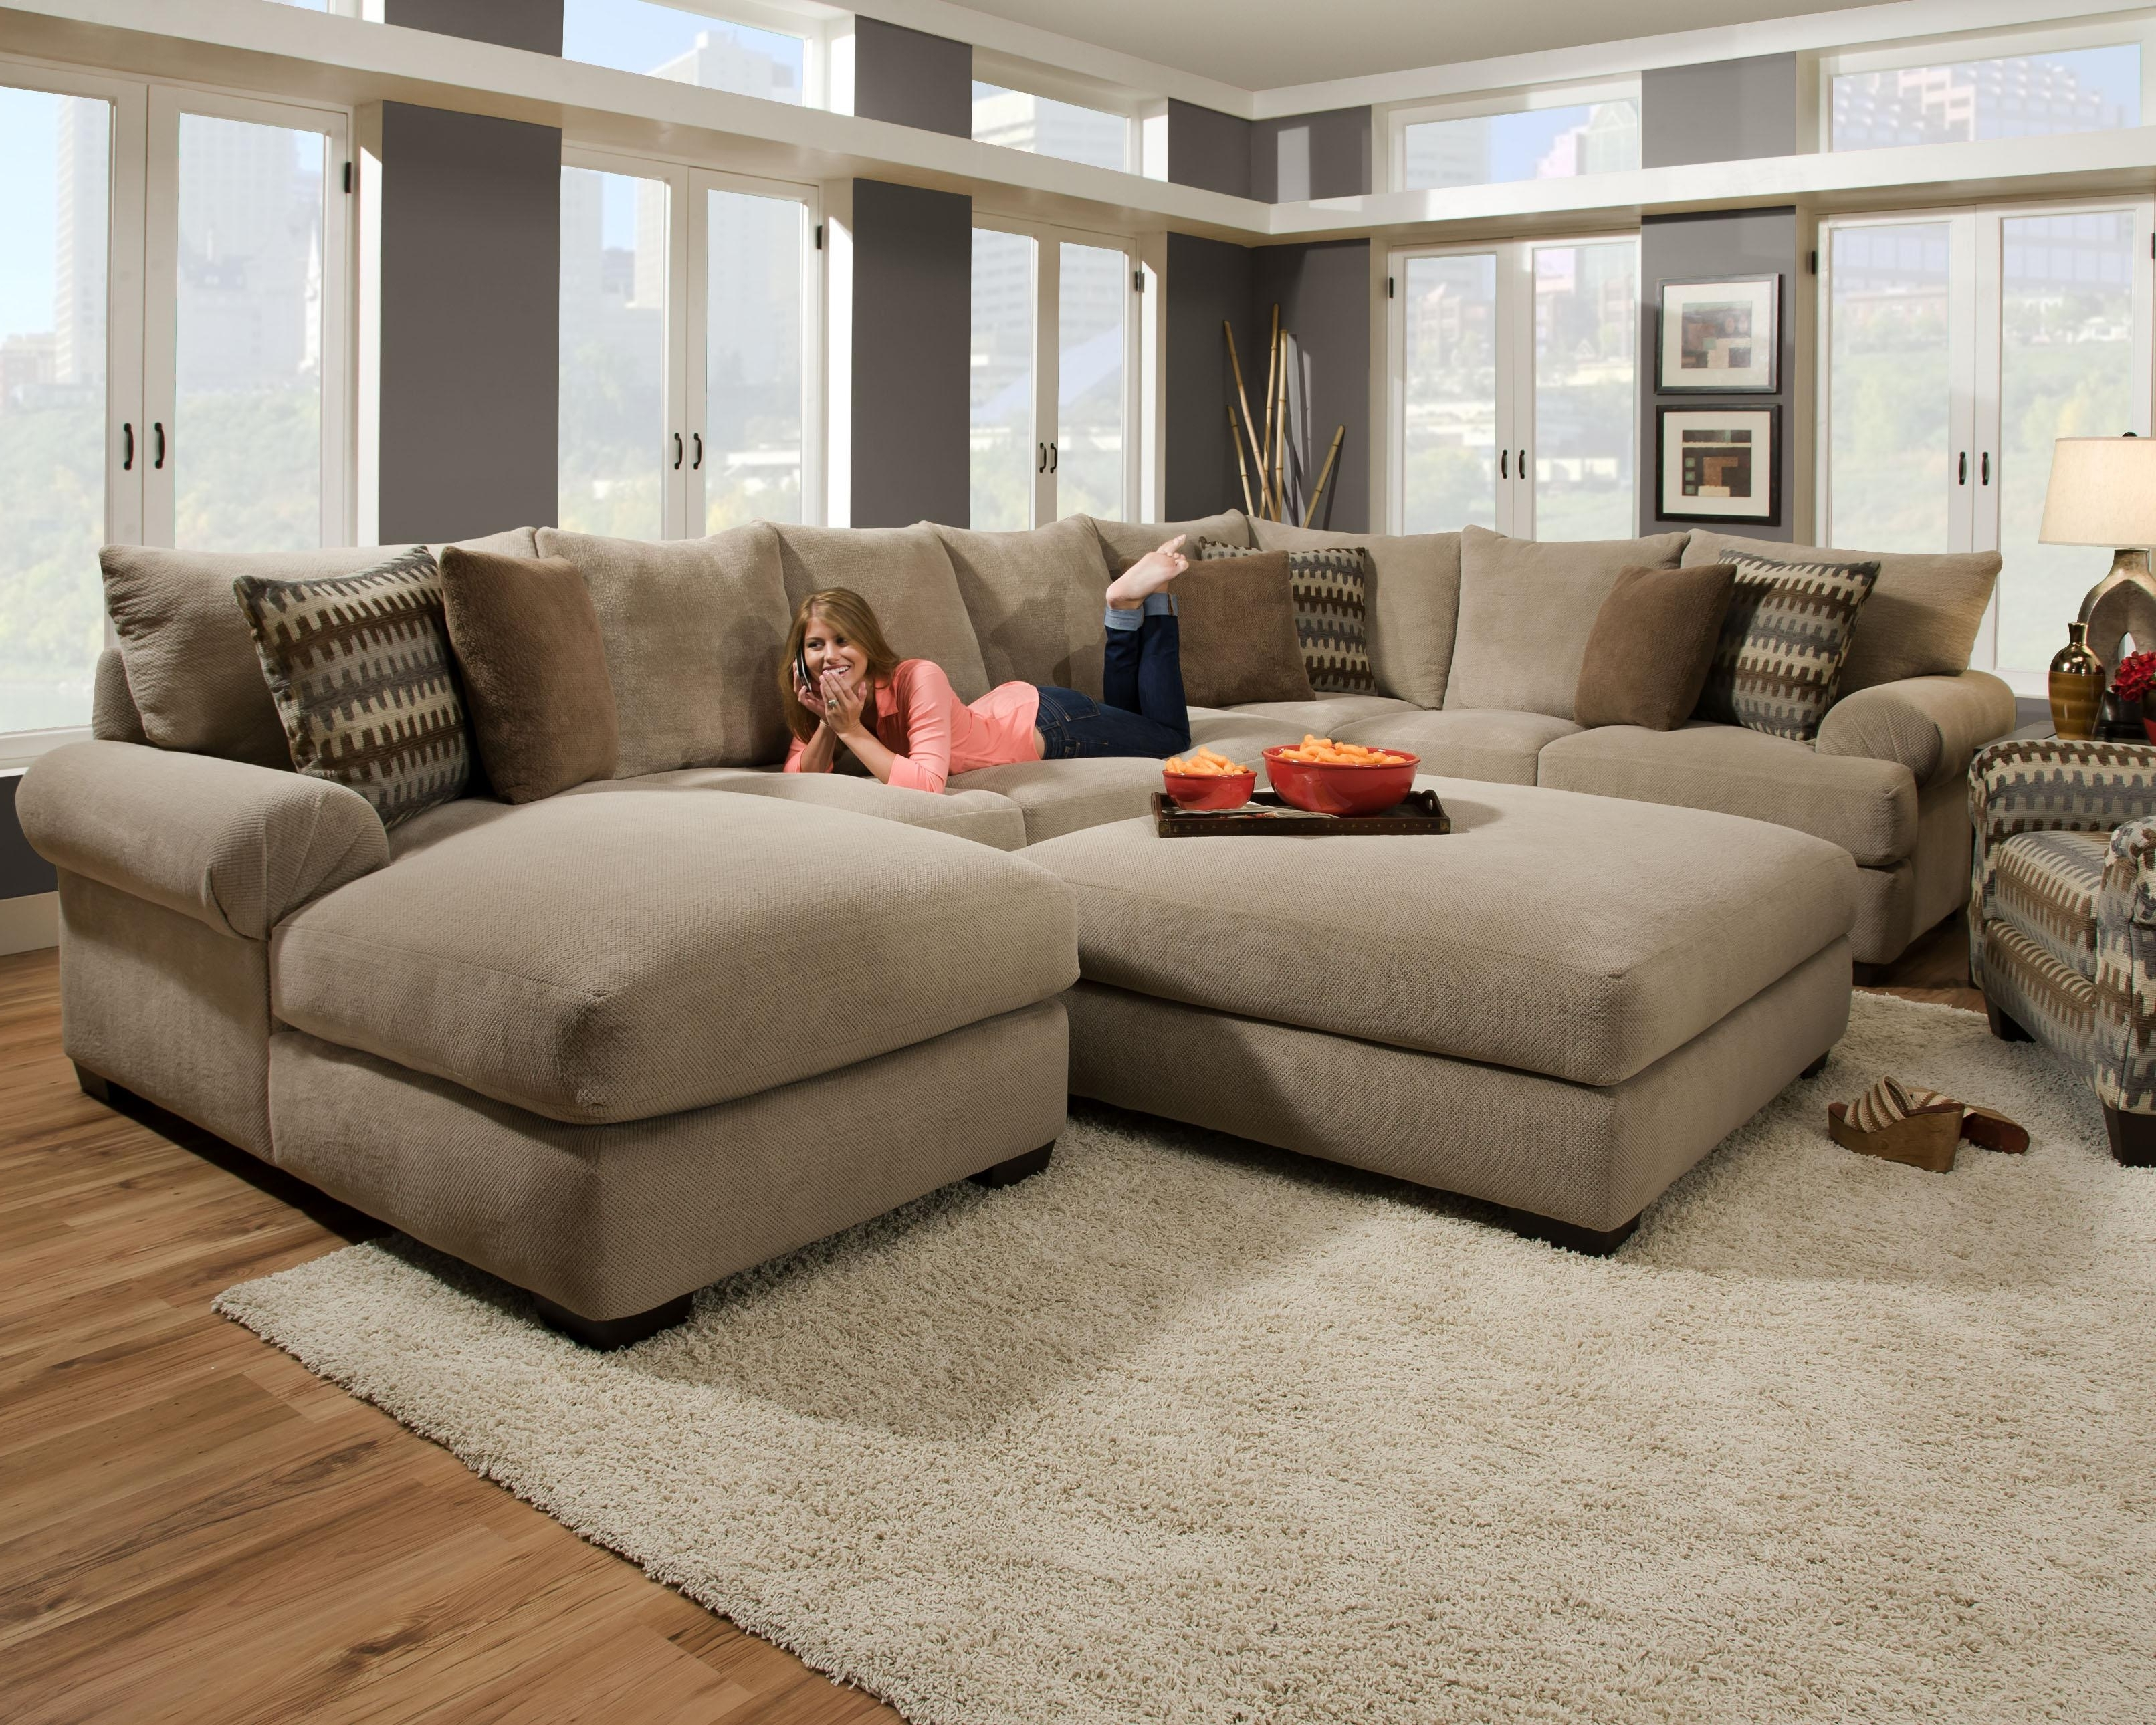 Popular Sofas : Oversized Sofa Cheap Sectional Sofas Chaise Sofa Modular With Regard To Sofas With Large Ottoman (View 8 of 15)